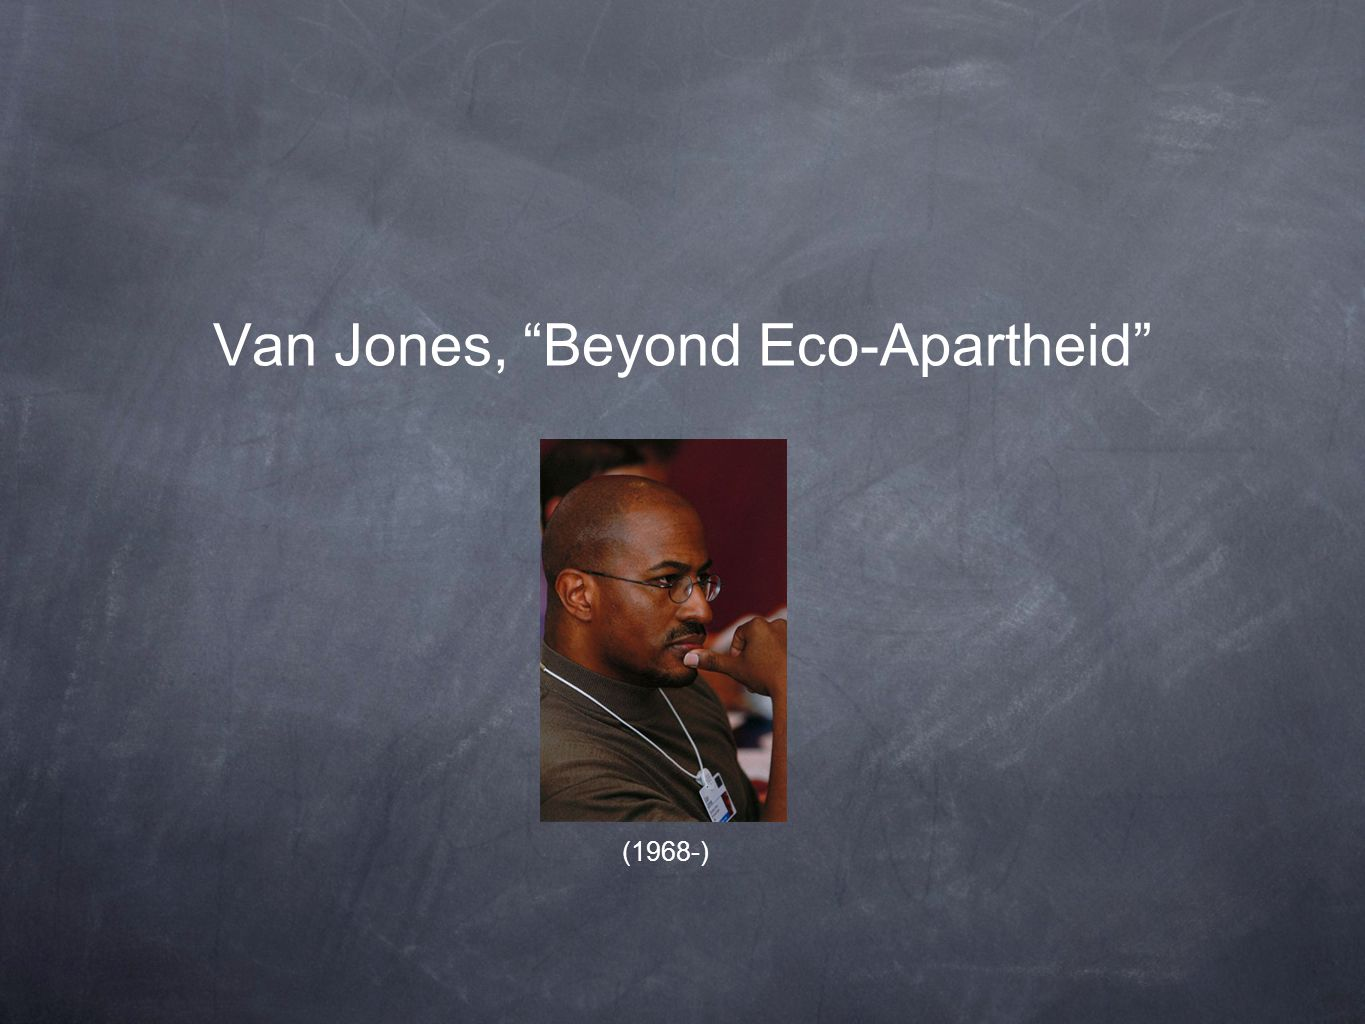 Van Jones, Beyond Eco-Apartheid (1968-)